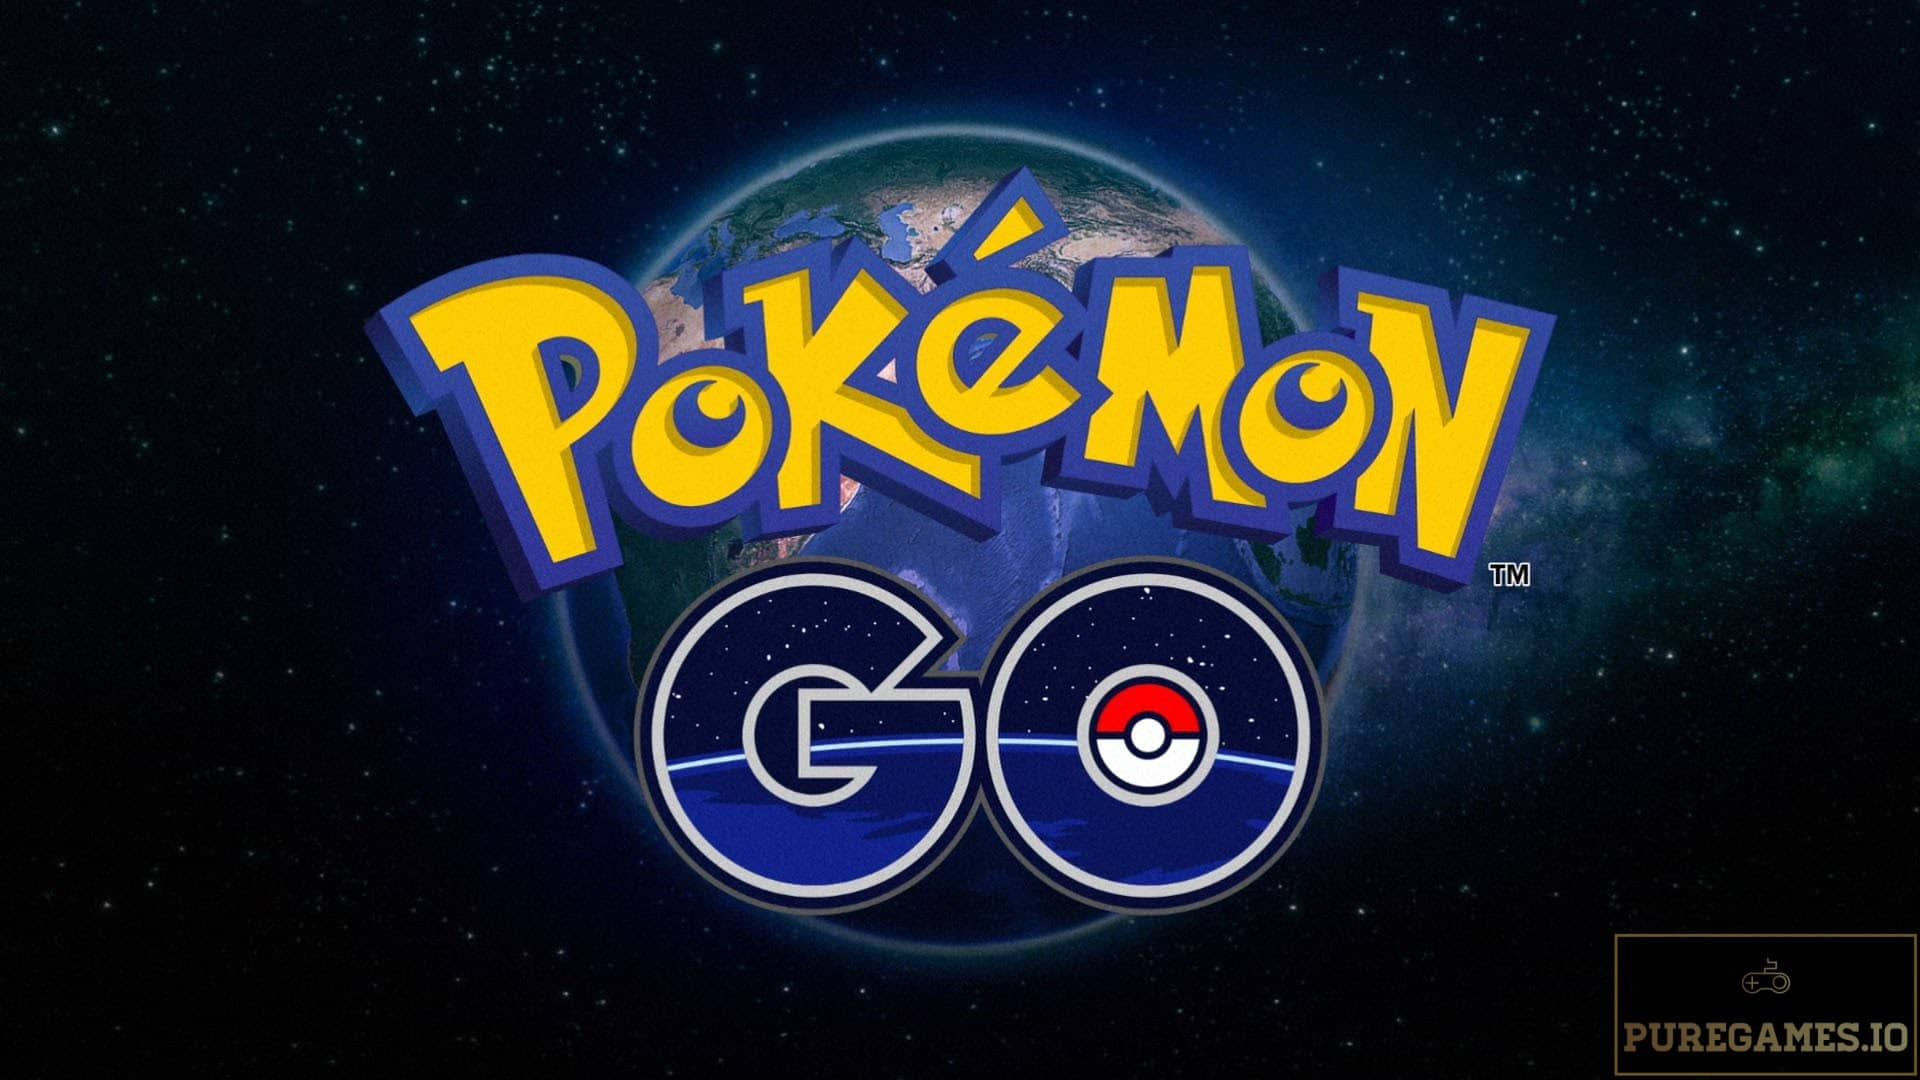 Download Pokémon Go APK – For Android/iOS 14